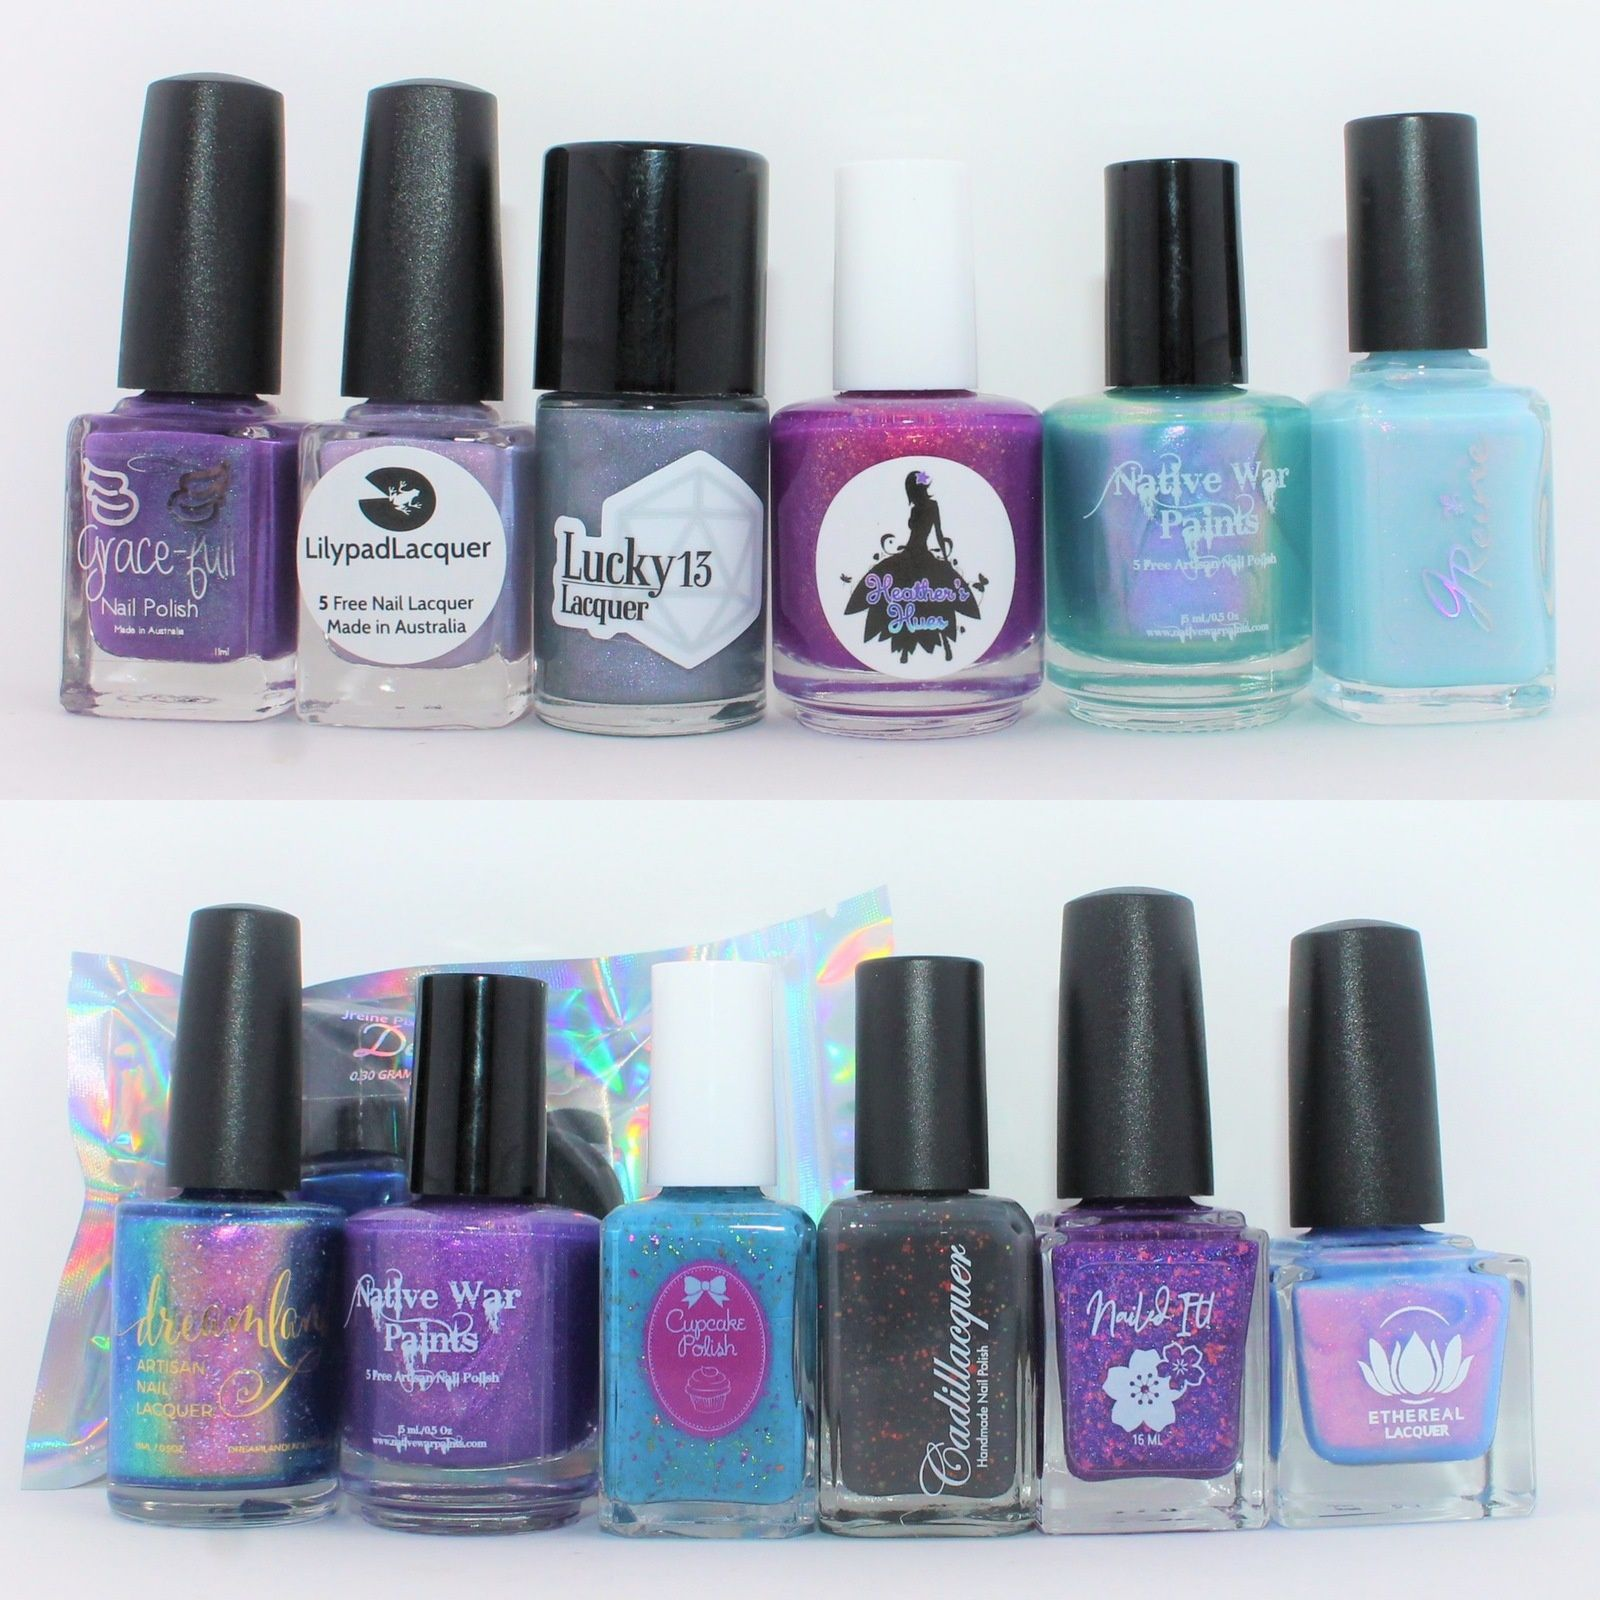 PPU December 2019  - Grace-Full Winter Blooms, Lilypad Lacquer Below Zero, Lucky 13 Nuclear Winter Wonderland, Heather's Hue Hotel of Ice, Natuve War Paints Beautiful Wanderings, JReine Crystal Star.  PPU November 2019 - JReine Pixie Magic Kit Destiny, Dreamland Lacquer What an Awkward Situation, Native War Paints Three Brothers, Cupcake Polish I'll Never Grow up, Cadillacquer Mother Holle, Nailed It! Spirit of The Forest, Ethereal lacquer Under The Sea.